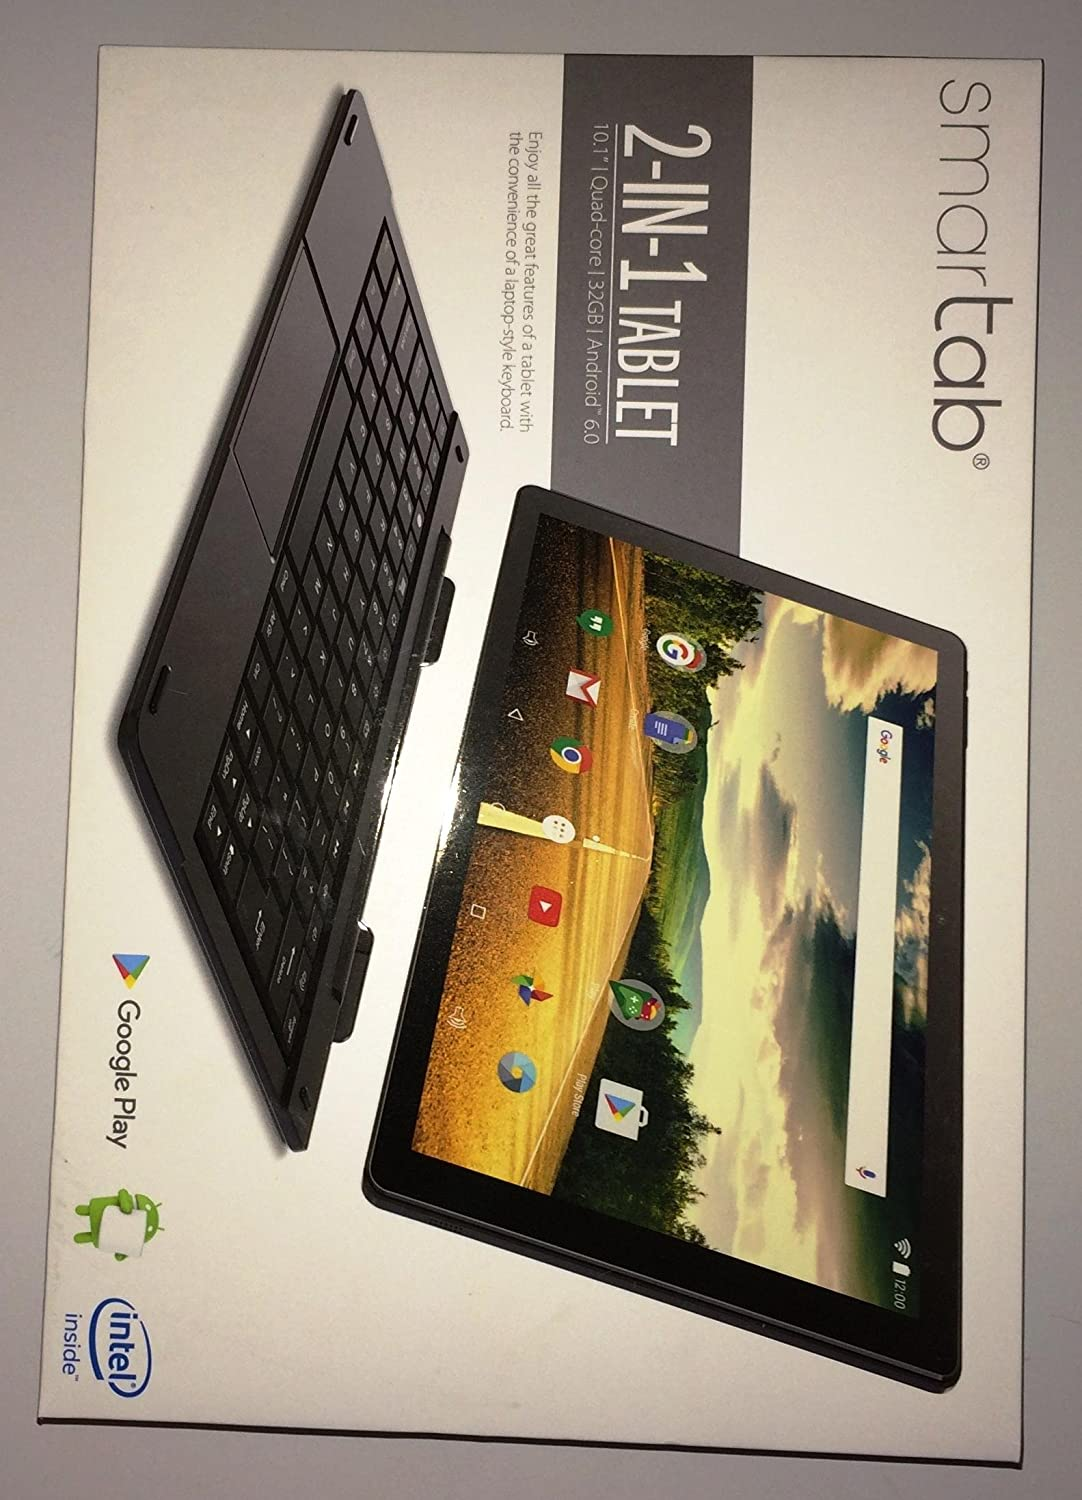 Smartab 2-in-1 Tablet